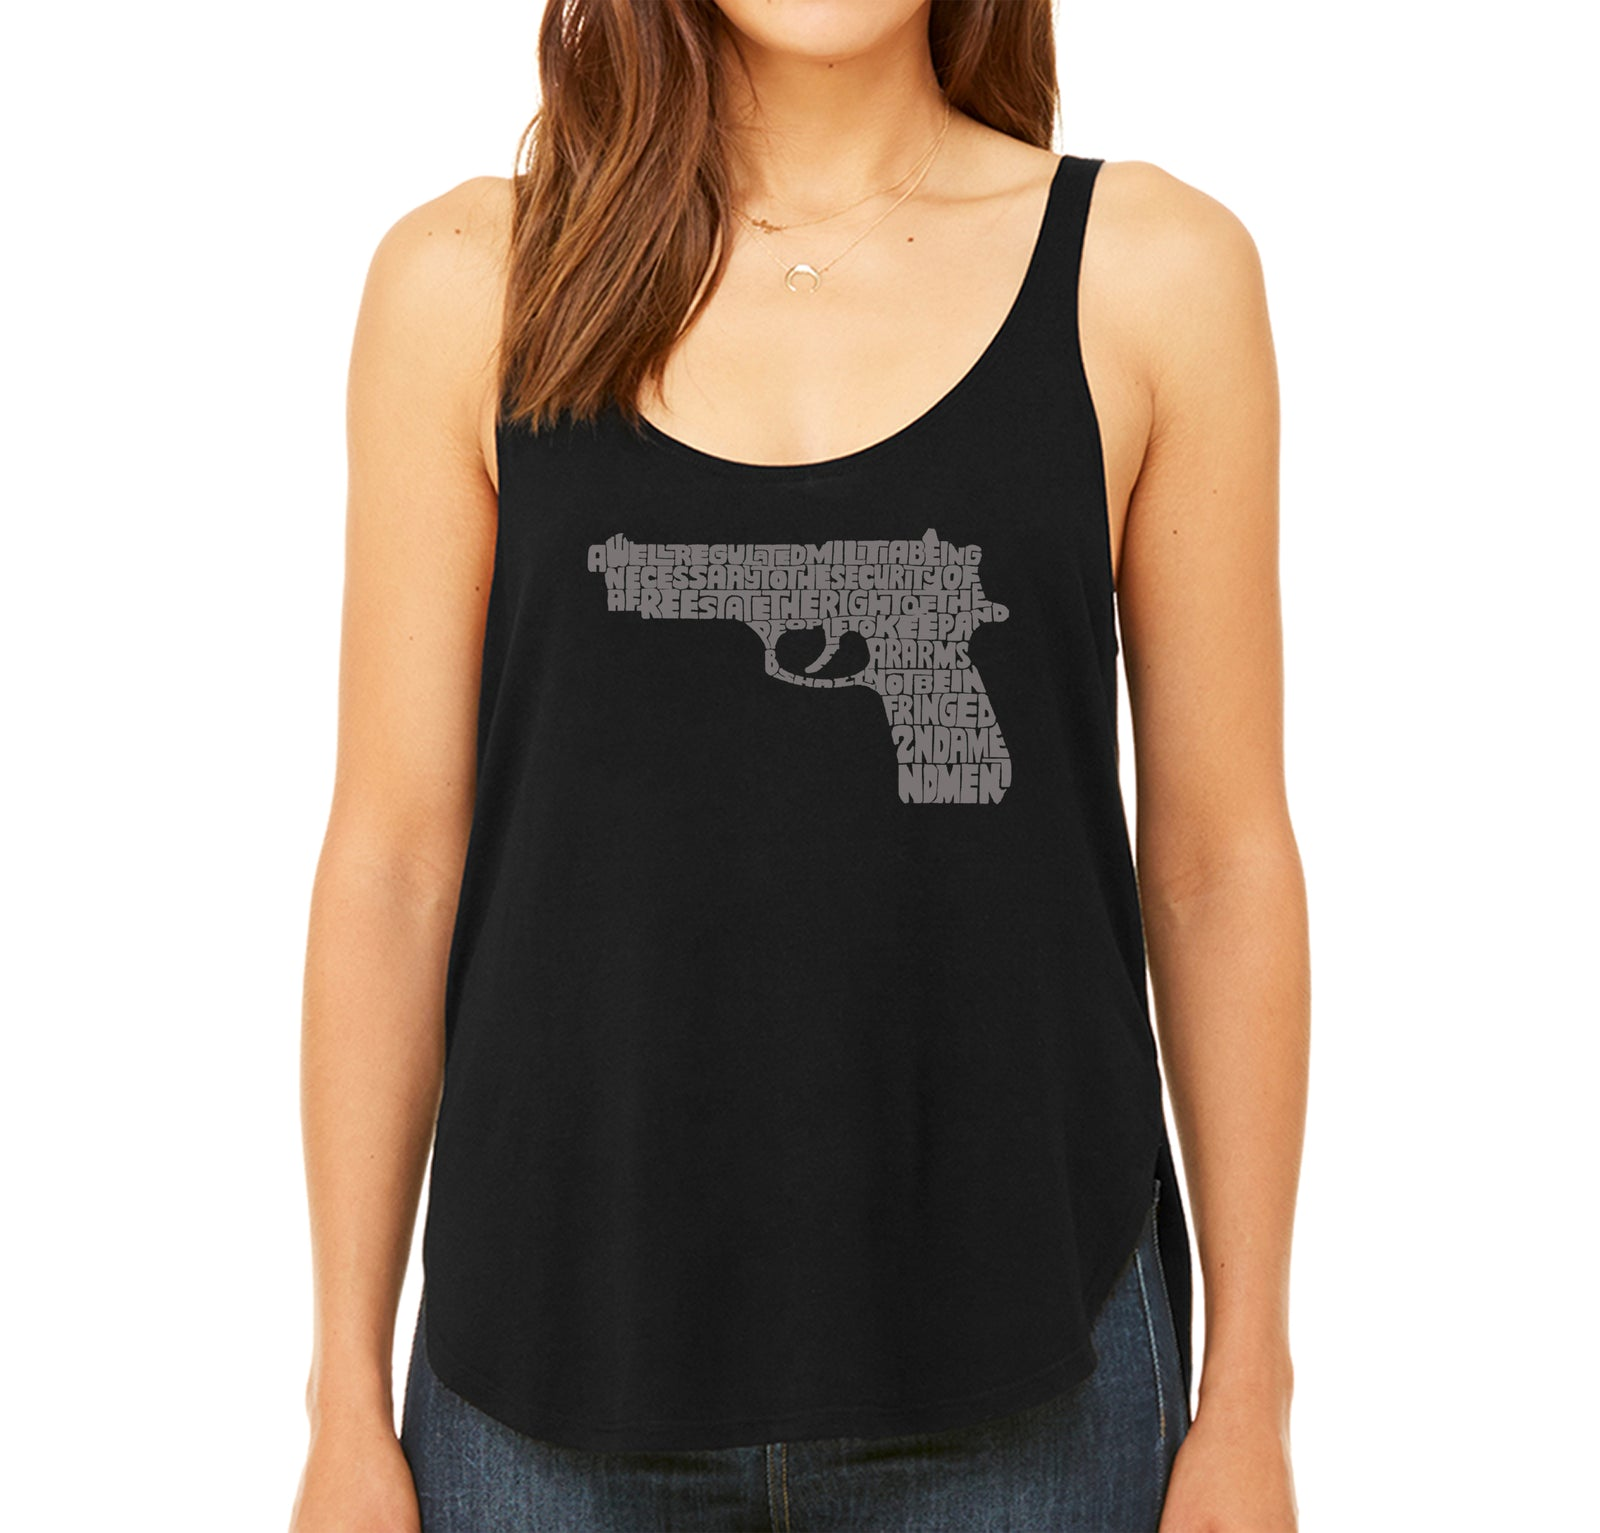 Women's Premium Word Art Flowy Tank Top - RIGHT TO BEAR ARMS